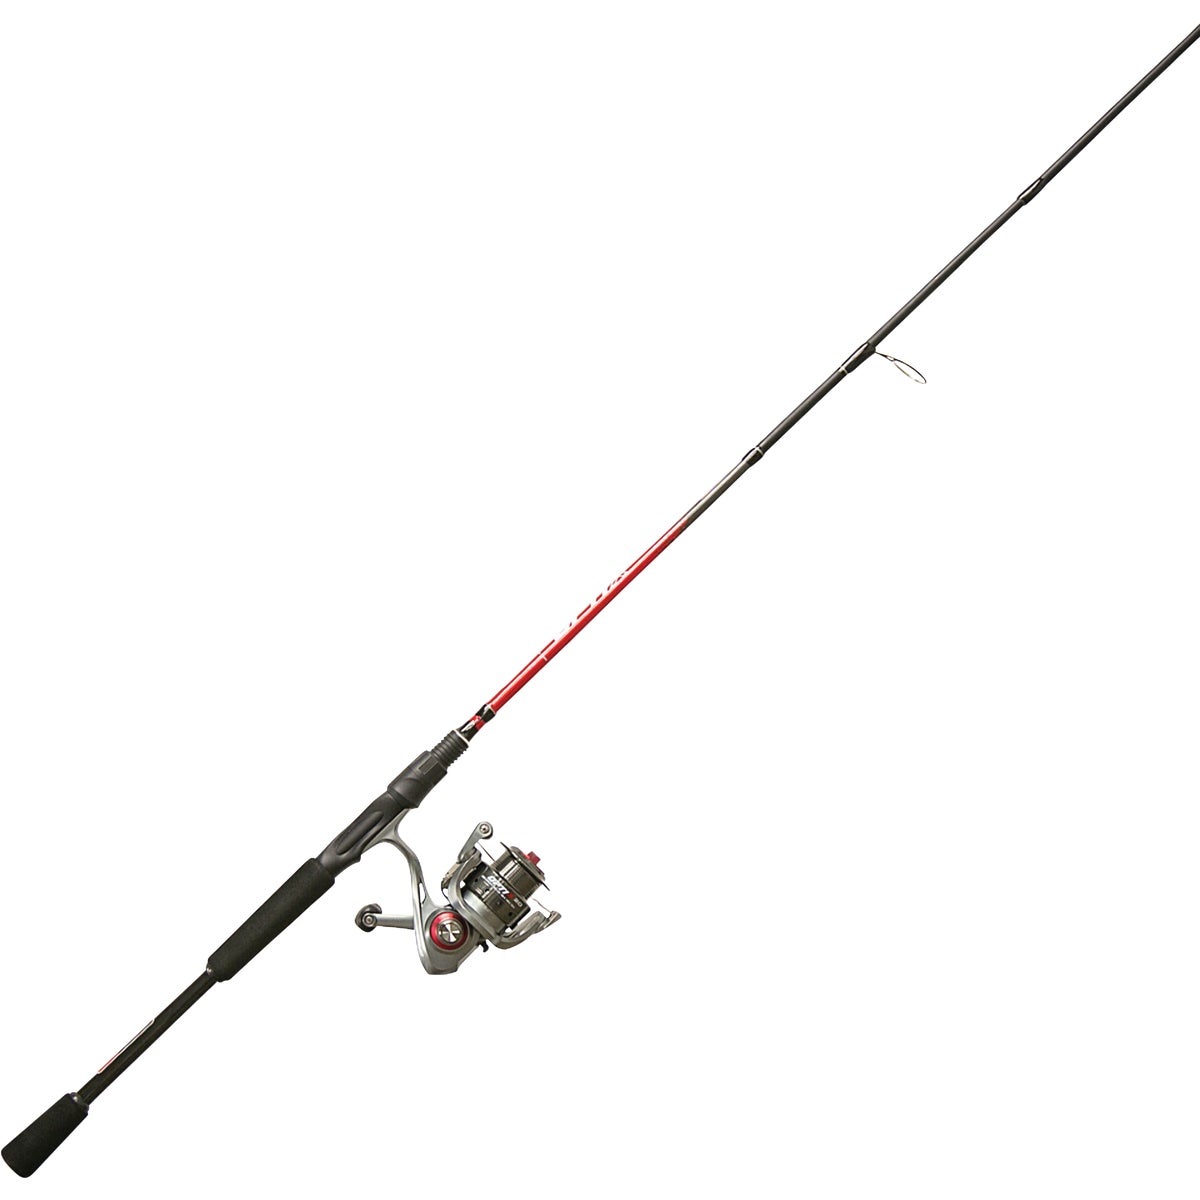 7' MED SPINNING ROD/REEL